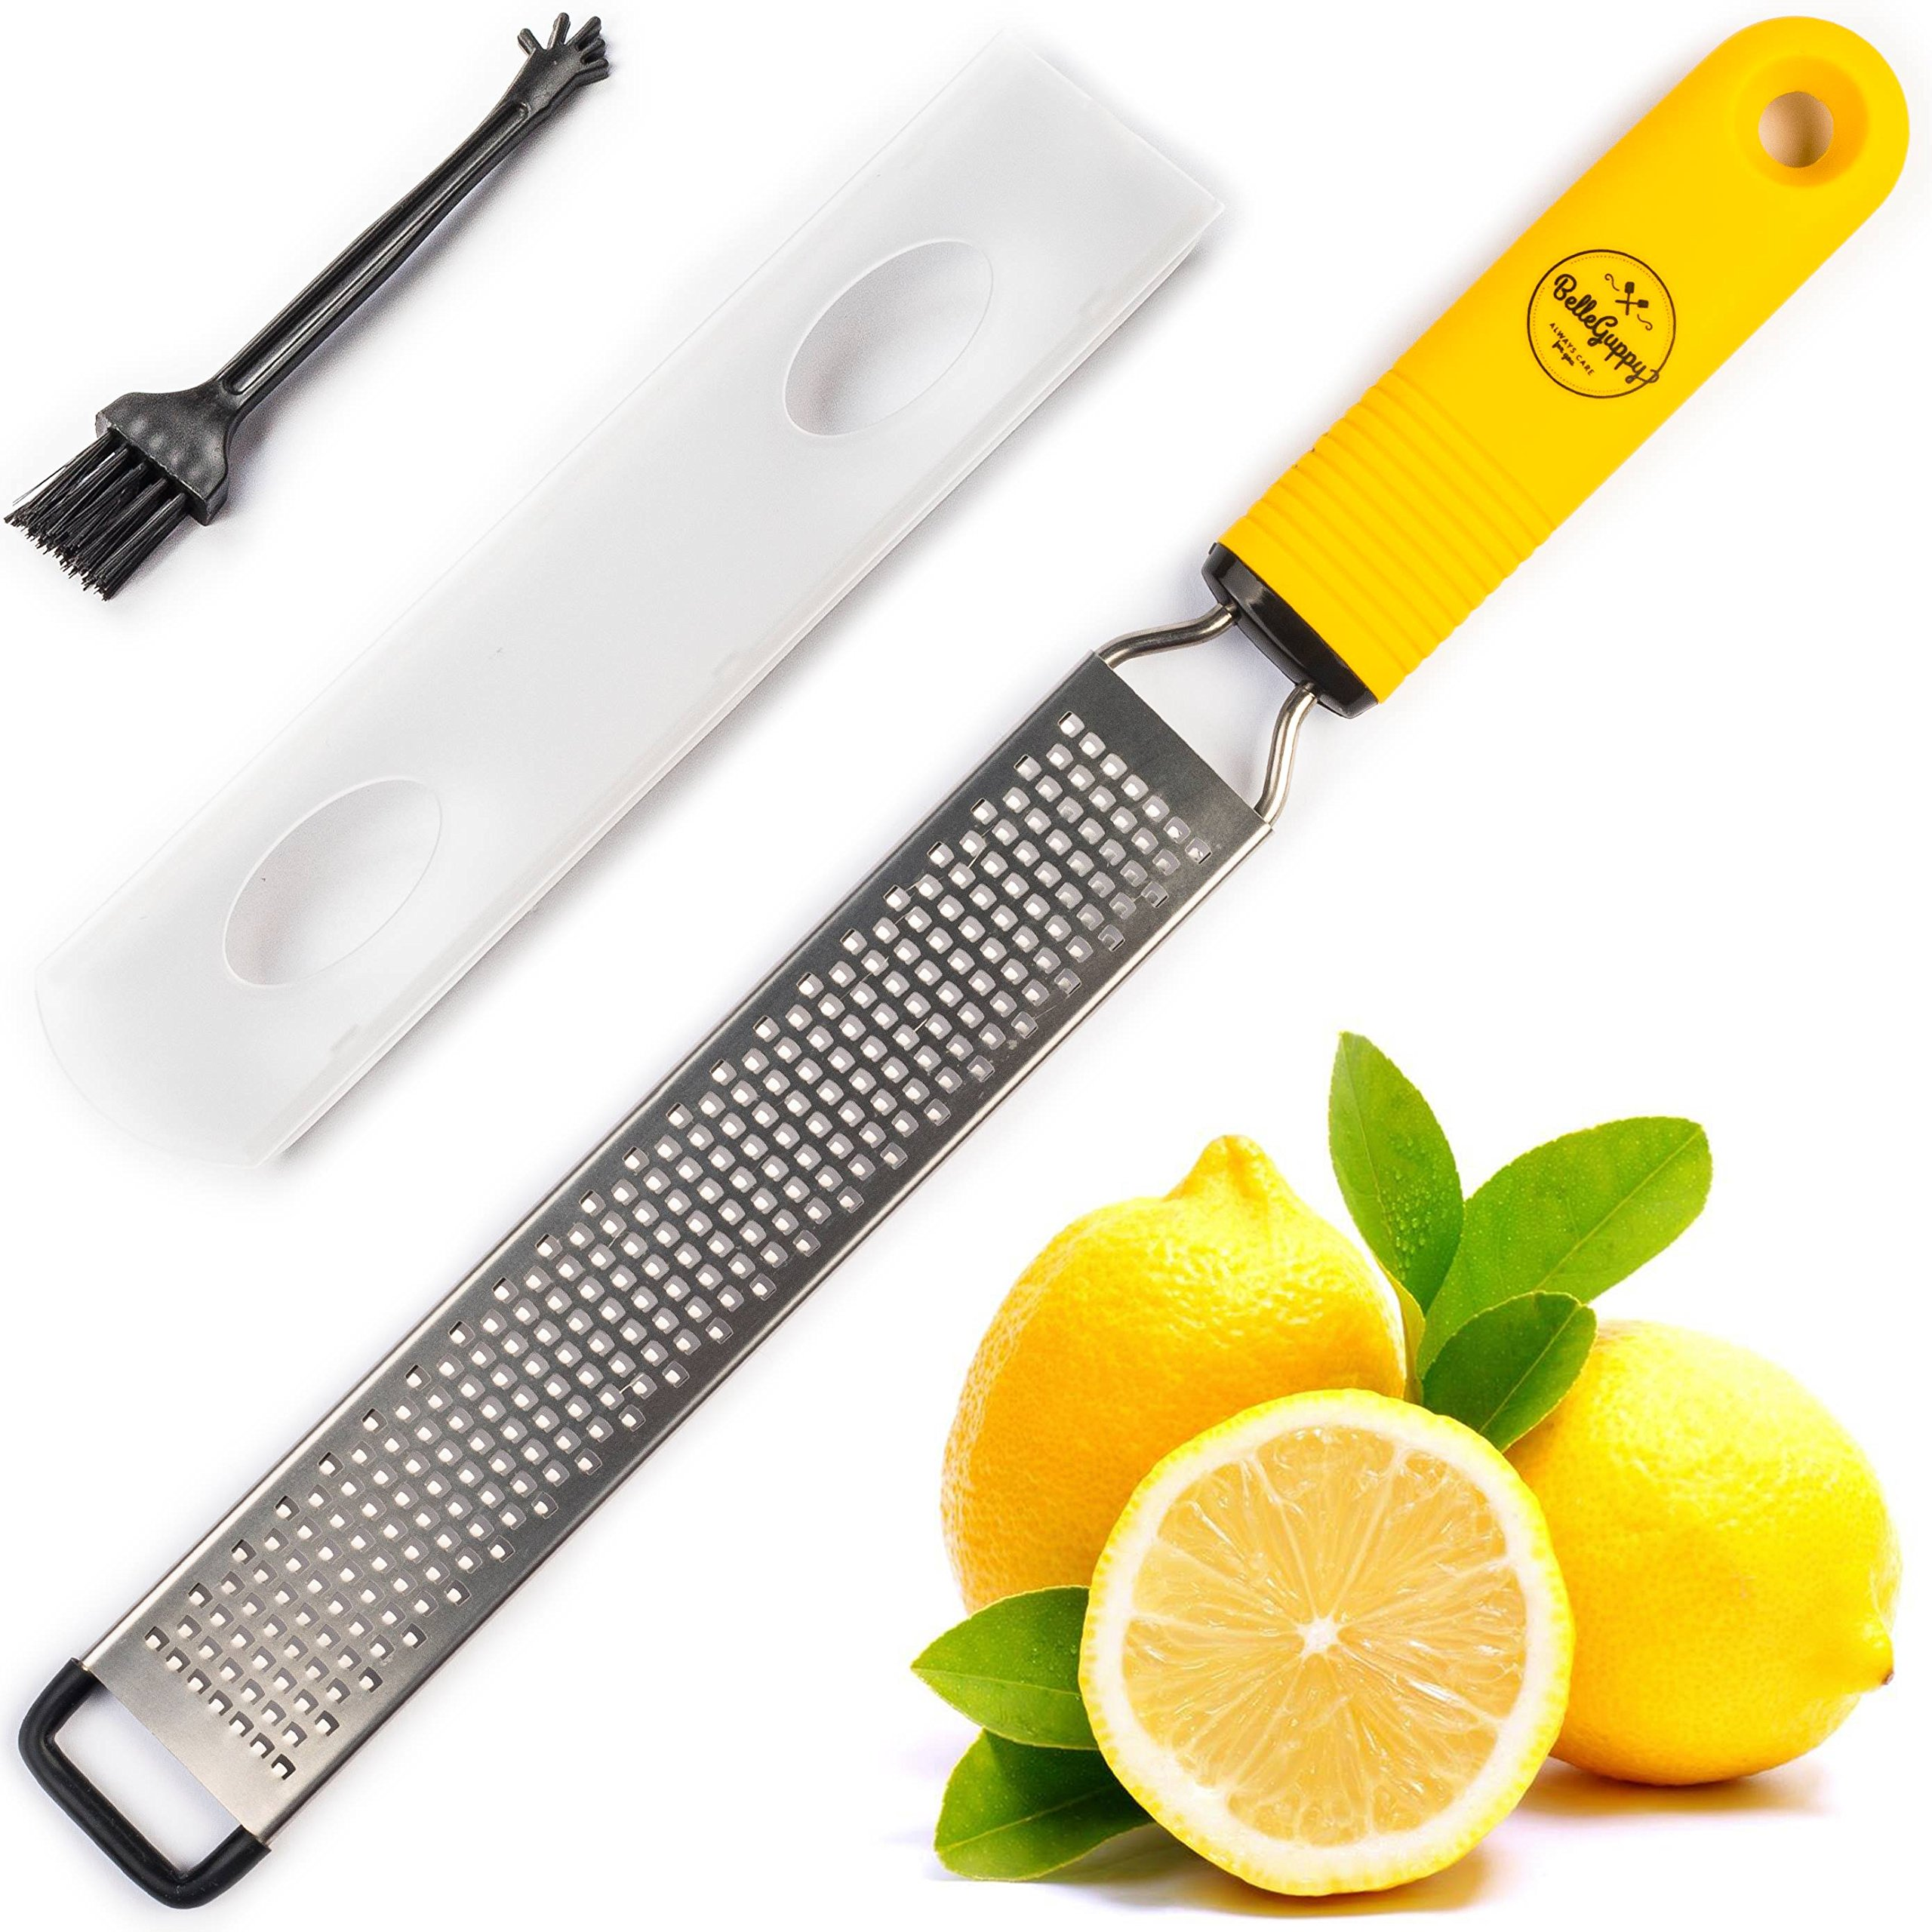 Lemon Zester & Cheese Grater Stainless Steel – Antibacterial Cover Blade, Ergonomic Non-Slip Silicone Handle, Professional Zesting Tool, BONUS Cleaning Brush (yellow lemon) by BelleGuppy